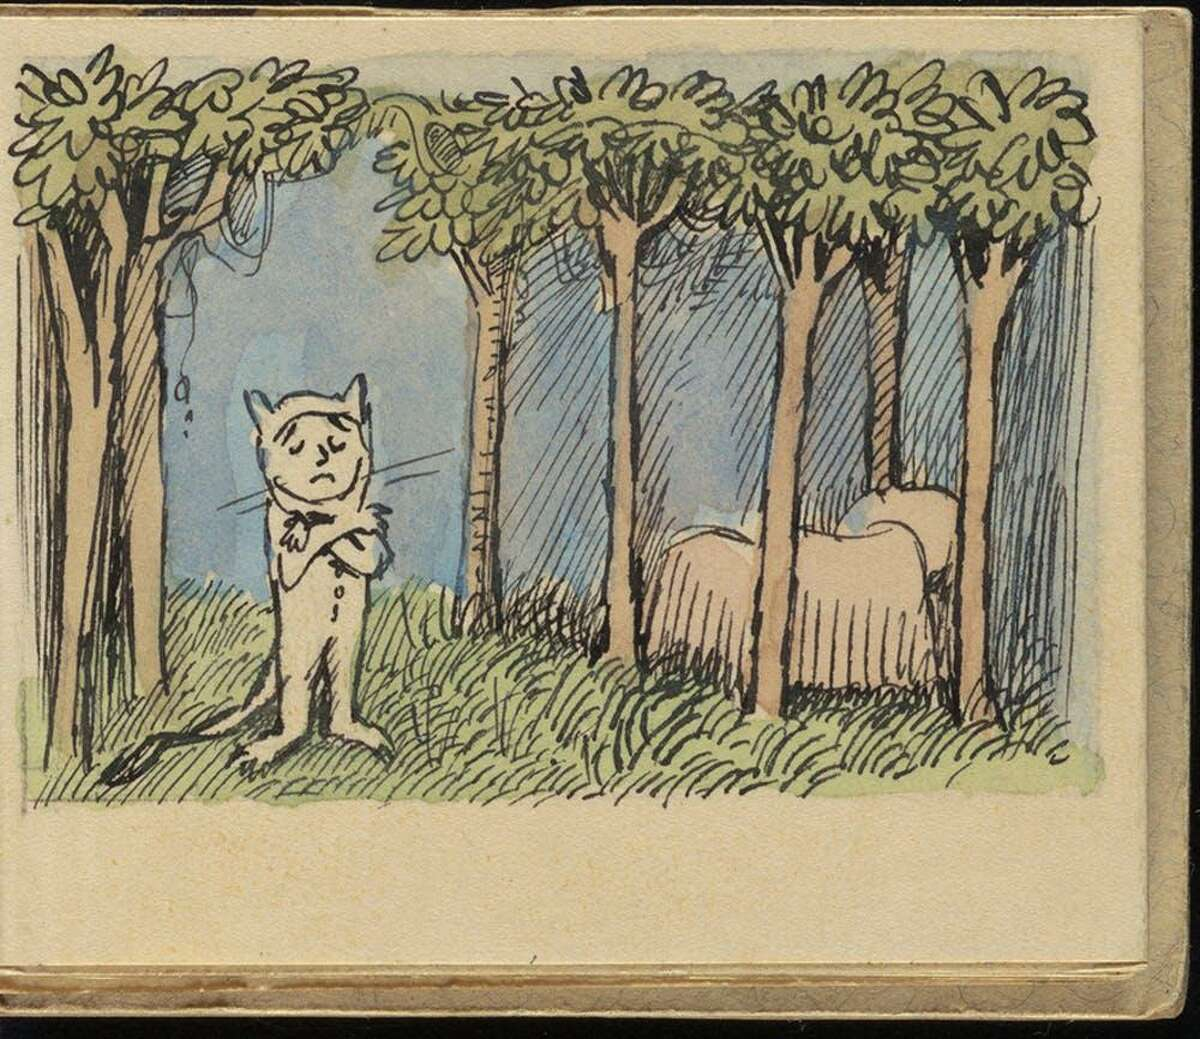 Dummy for Where the Wild Things Are (1963), 26:9, The Maurice Sendak Collection. Archives & Special Collections at the Thomas J. Dodd Research Center, University of Connecticut Library. © The Maurice Sendak Foundation.